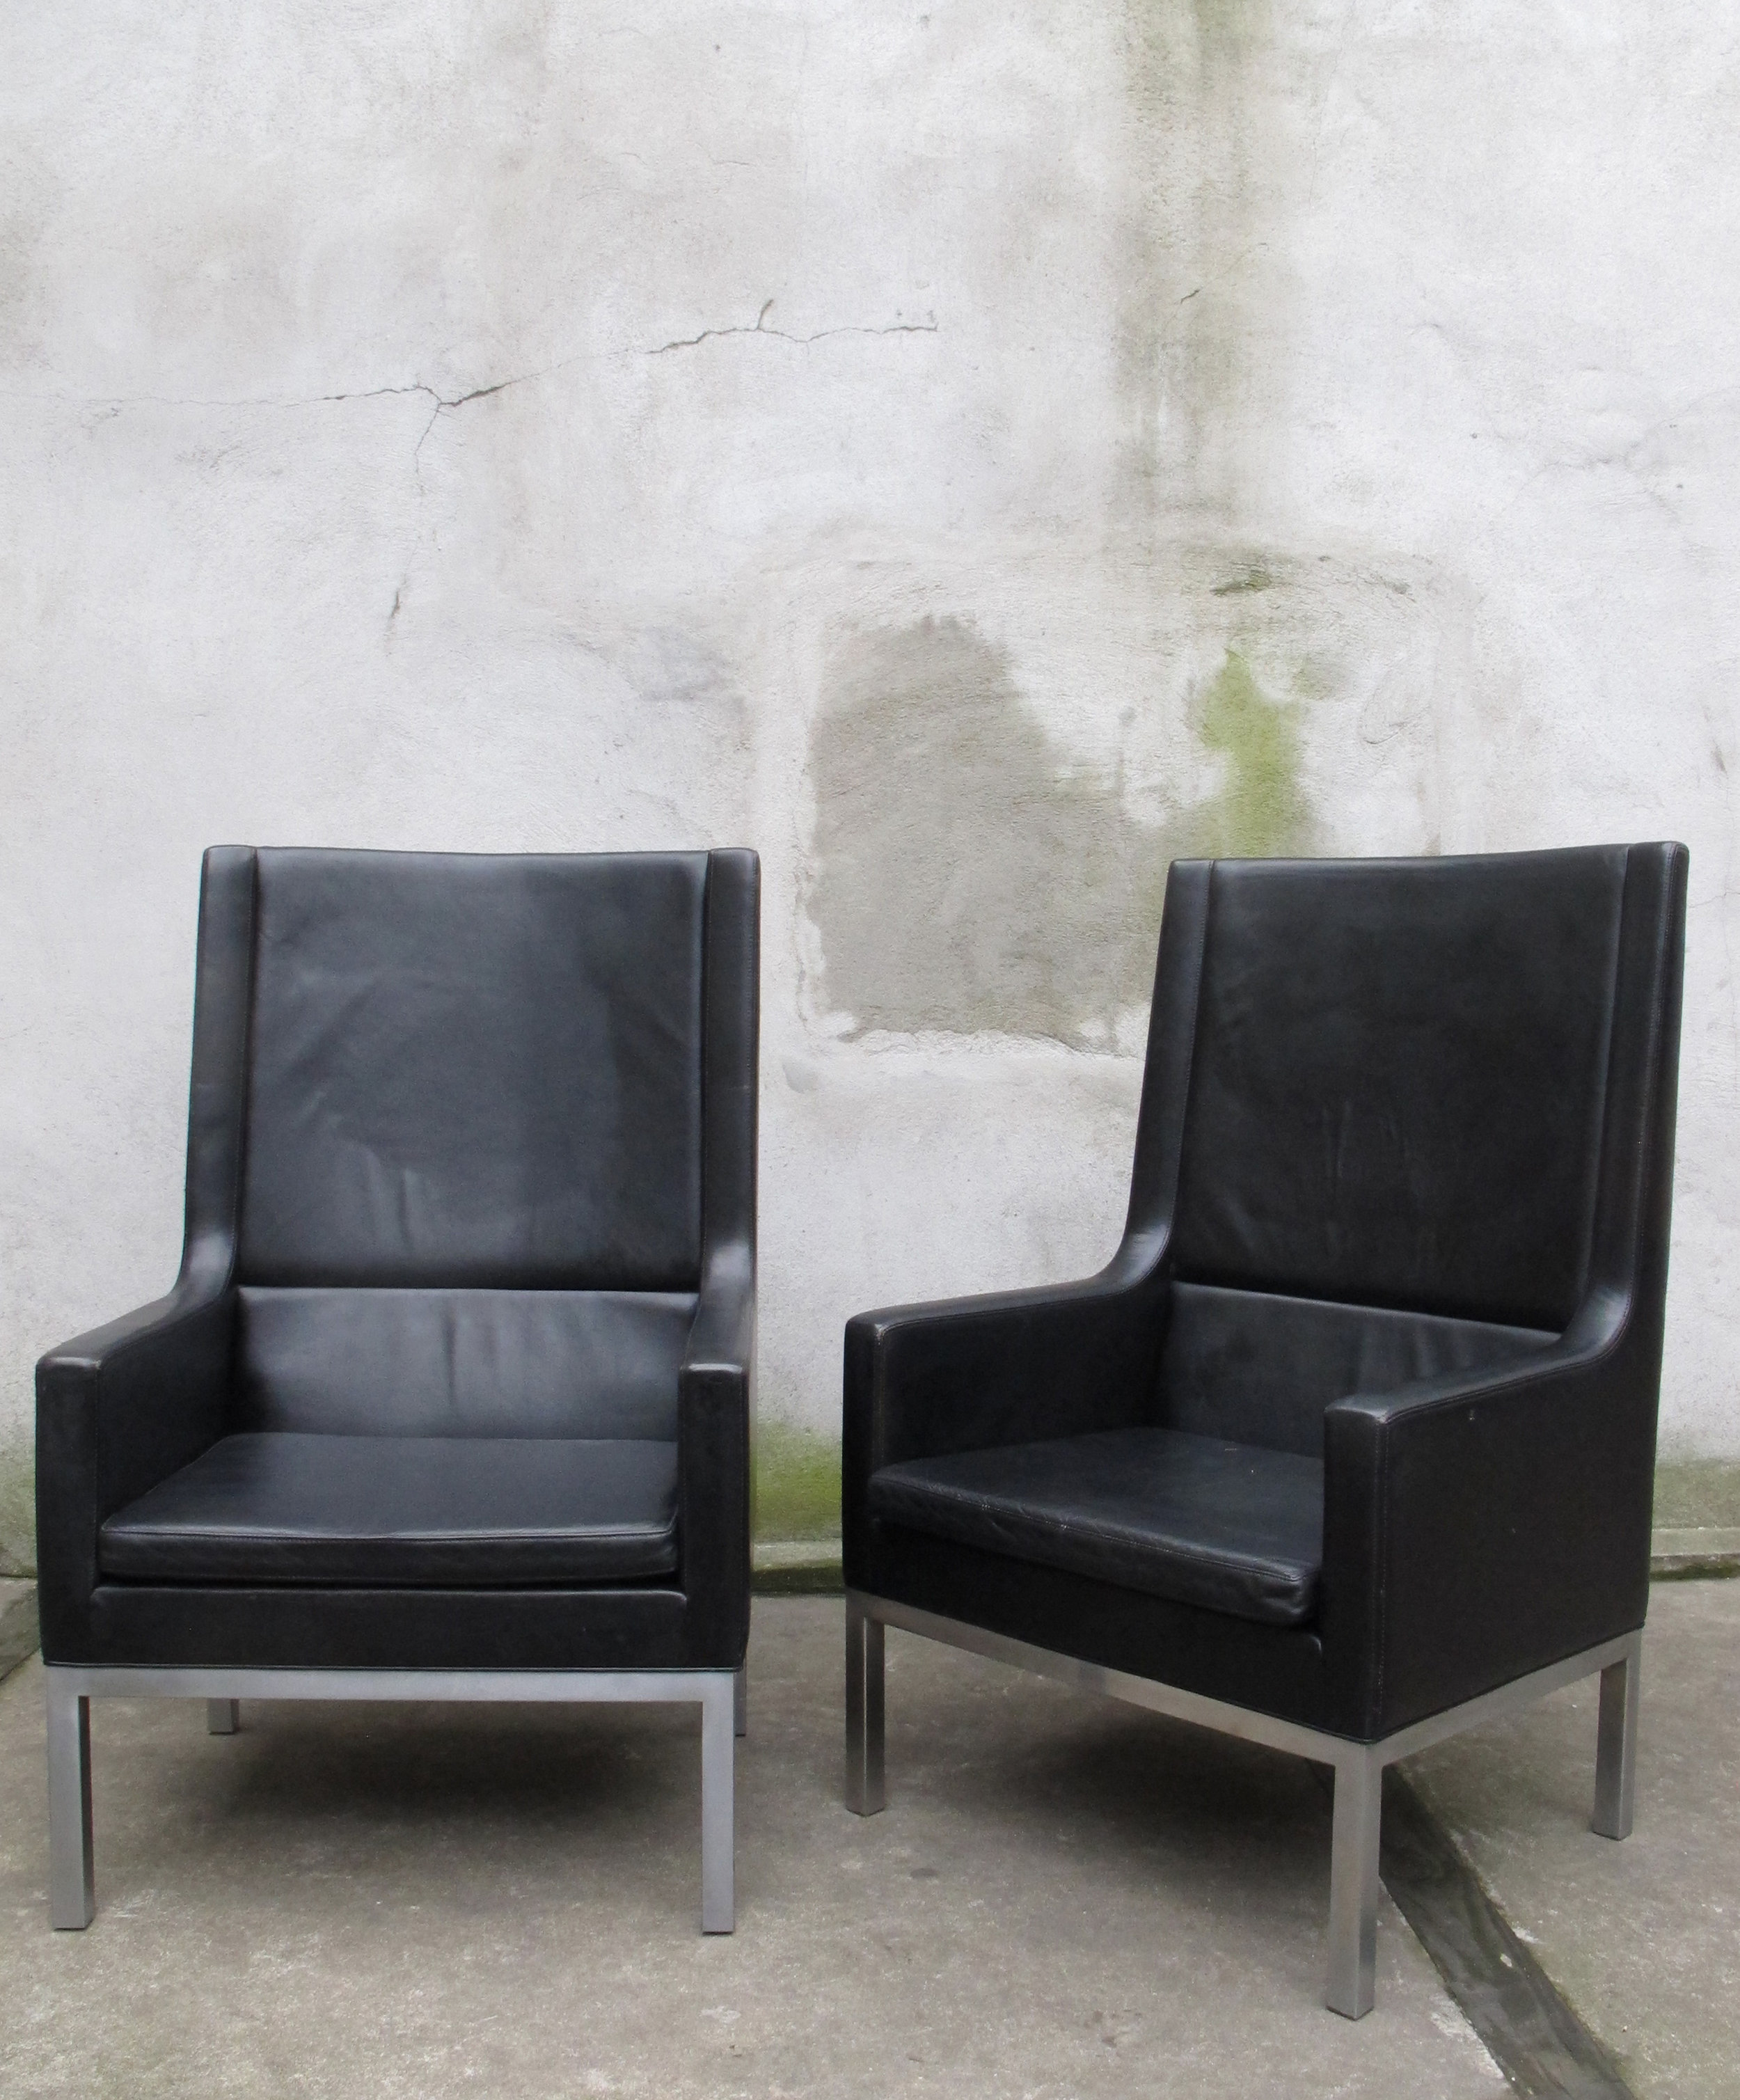 PAIR OF KNOLL STYLE MID CENTURY LEATHER LOUNGE CHAIRS